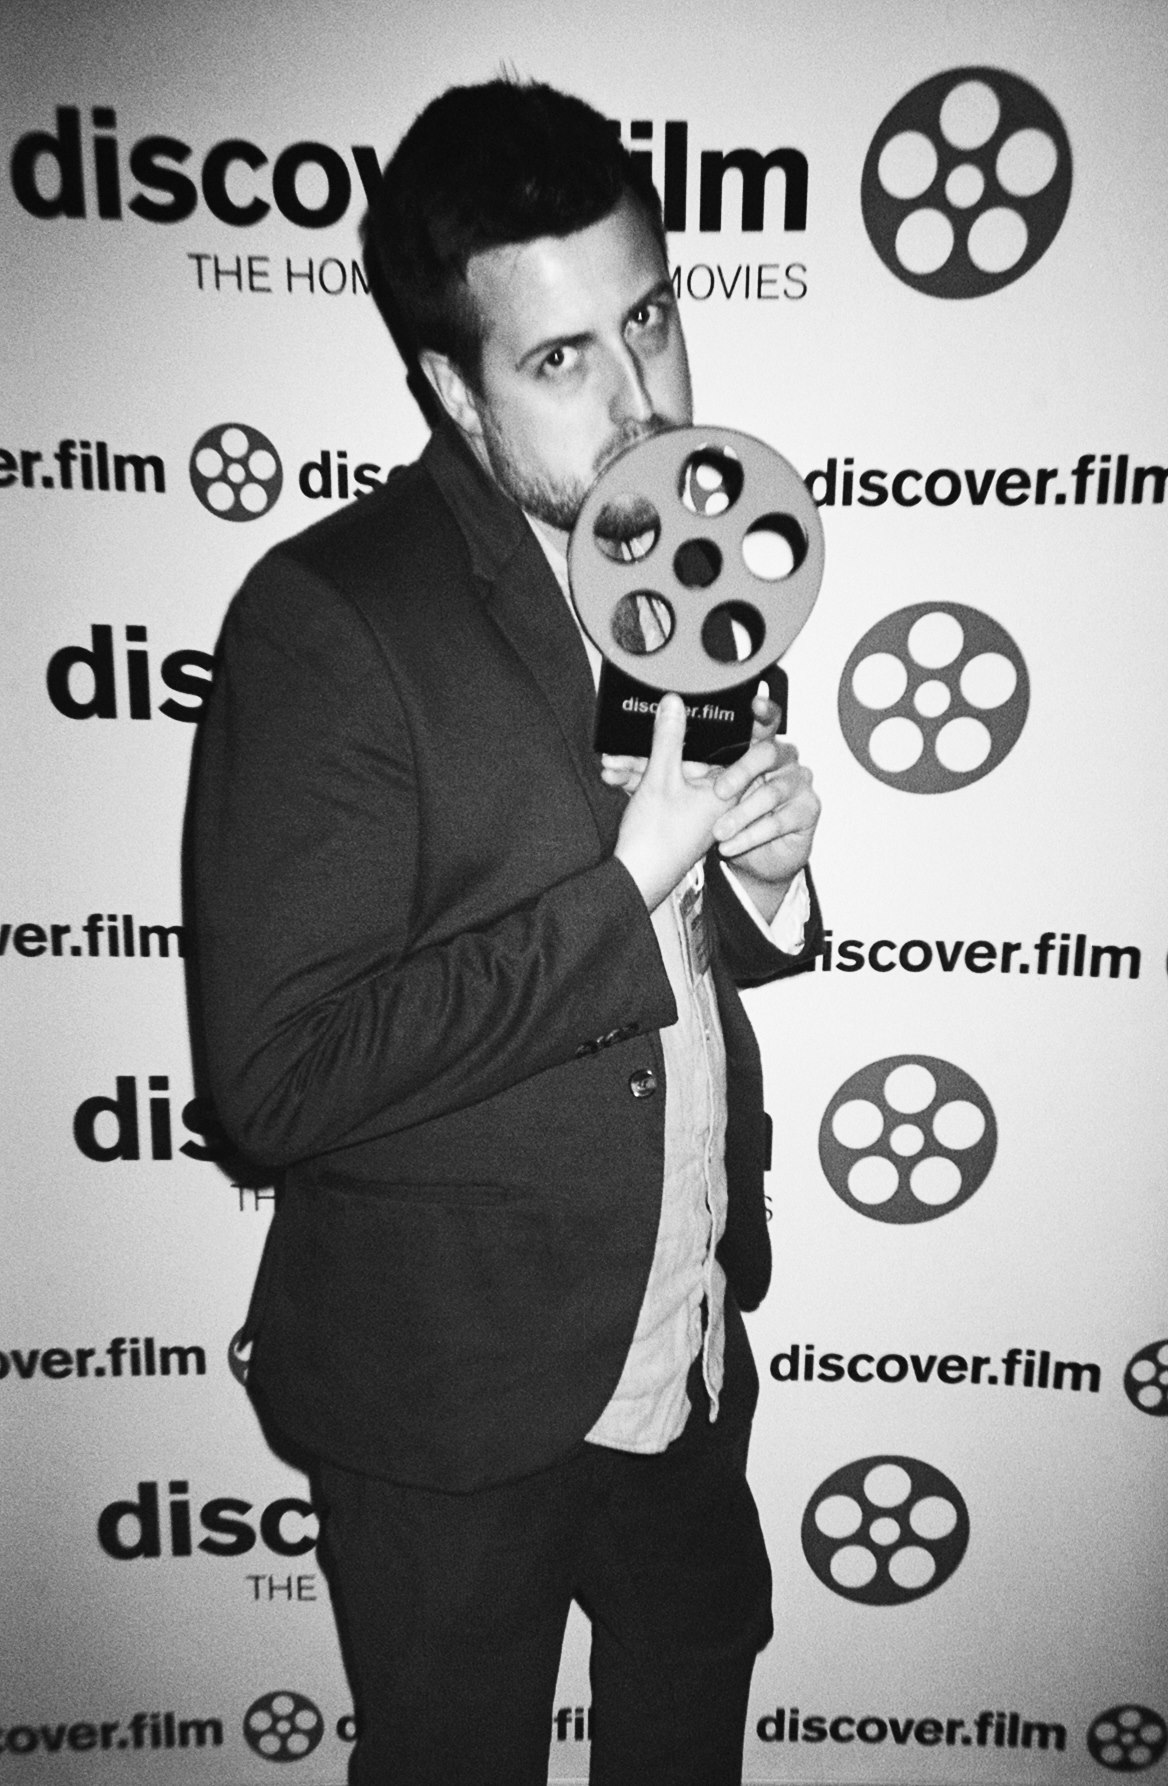 Director Jamie Maule-Ffinch - Our short film Morning After just won best UK comedy at Discover Film Festival!